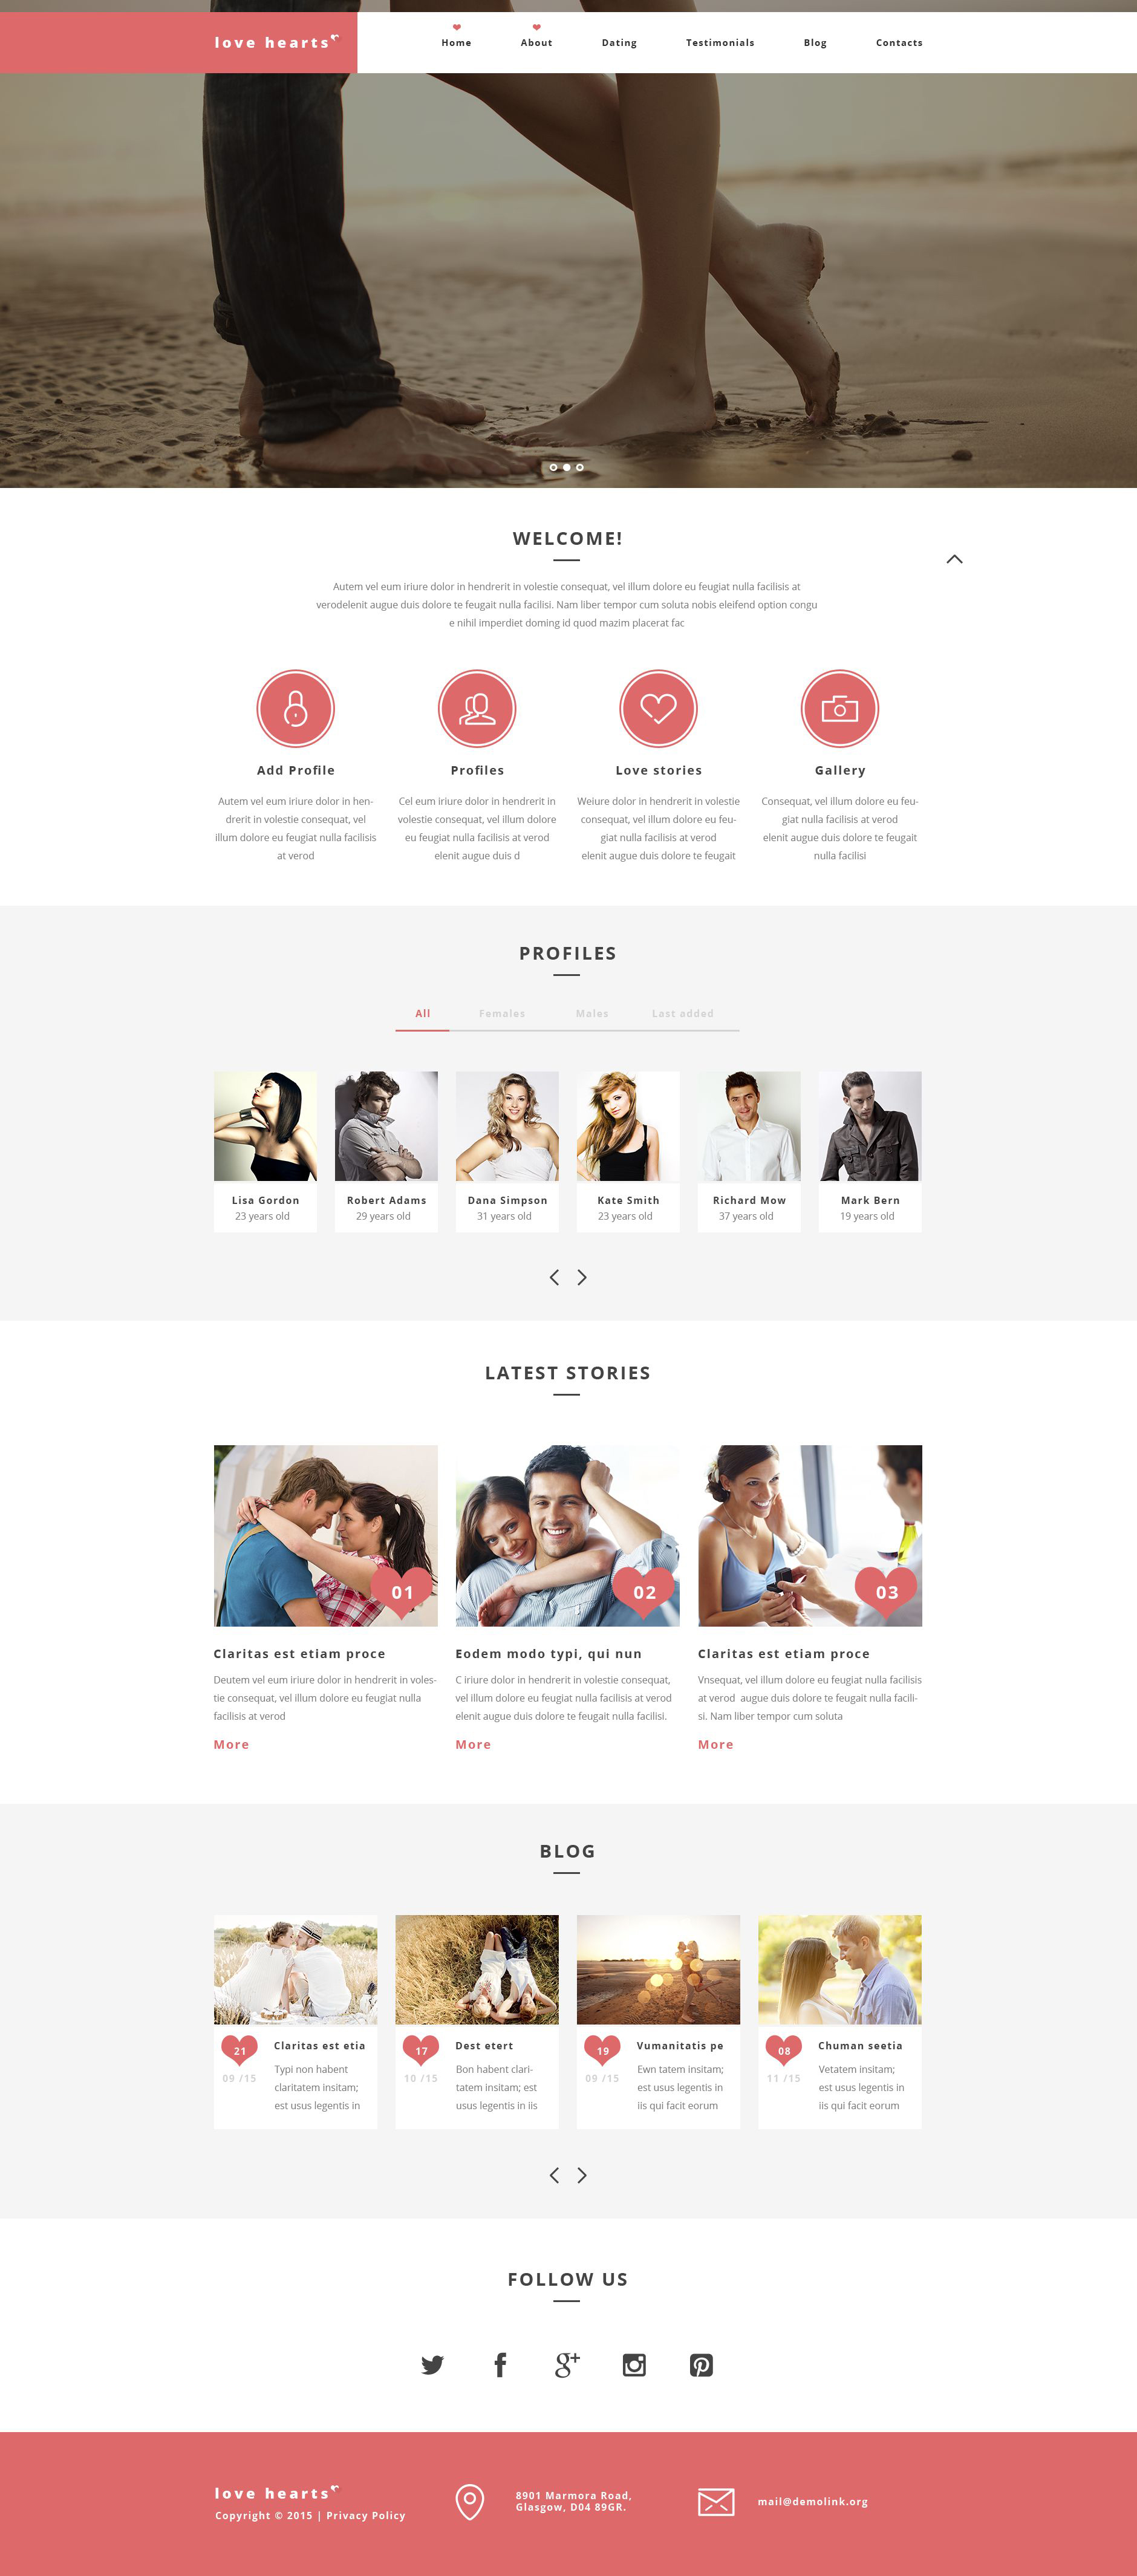 Love Hearts WordPress Theme - screenshot